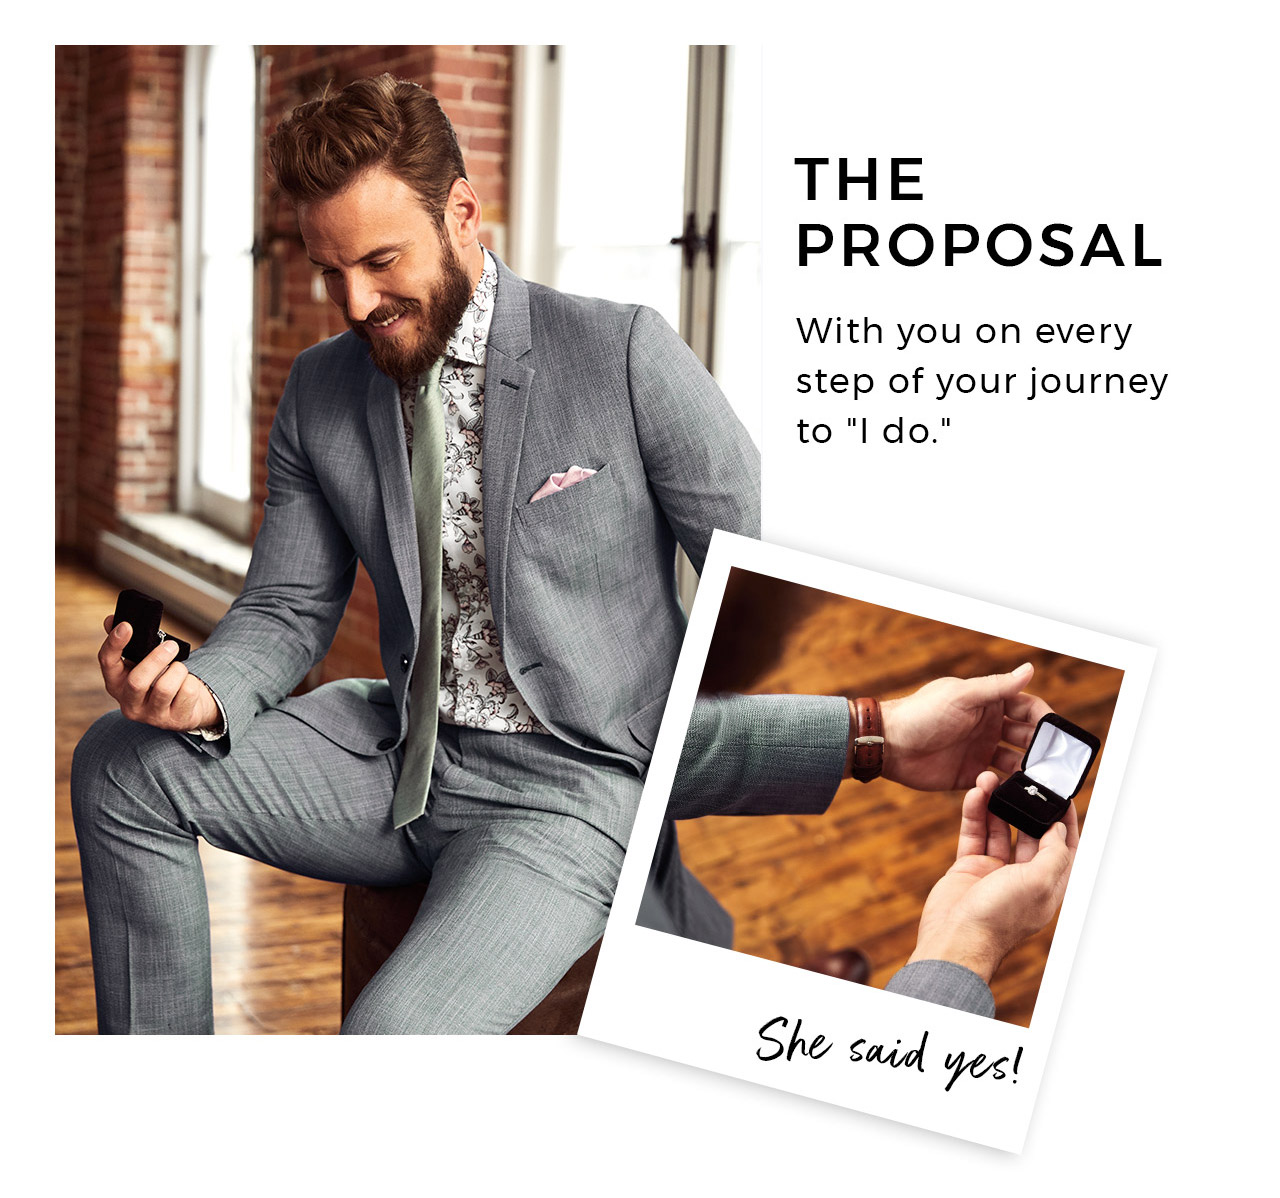 The proposal. With you every step of the way.